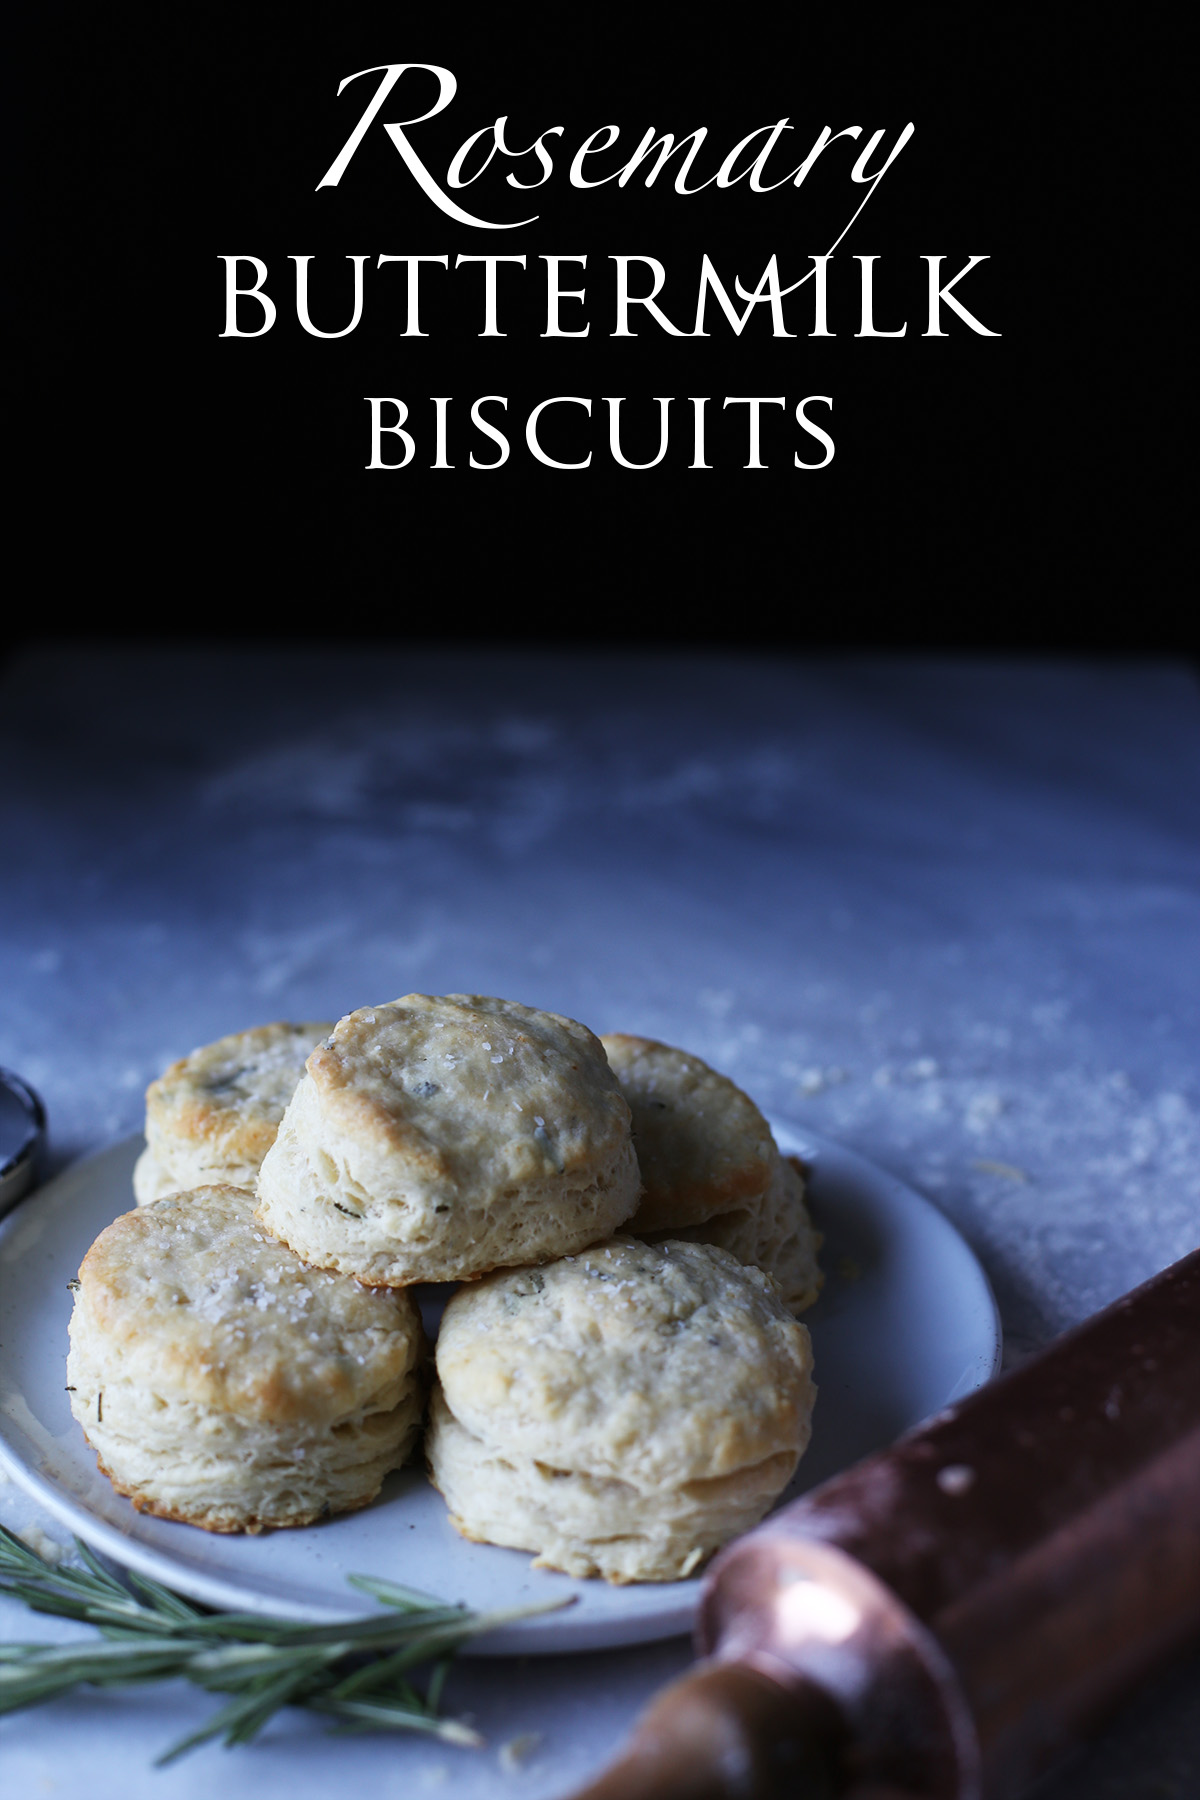 Rosemary Buttermilk Biscuits, Y'all